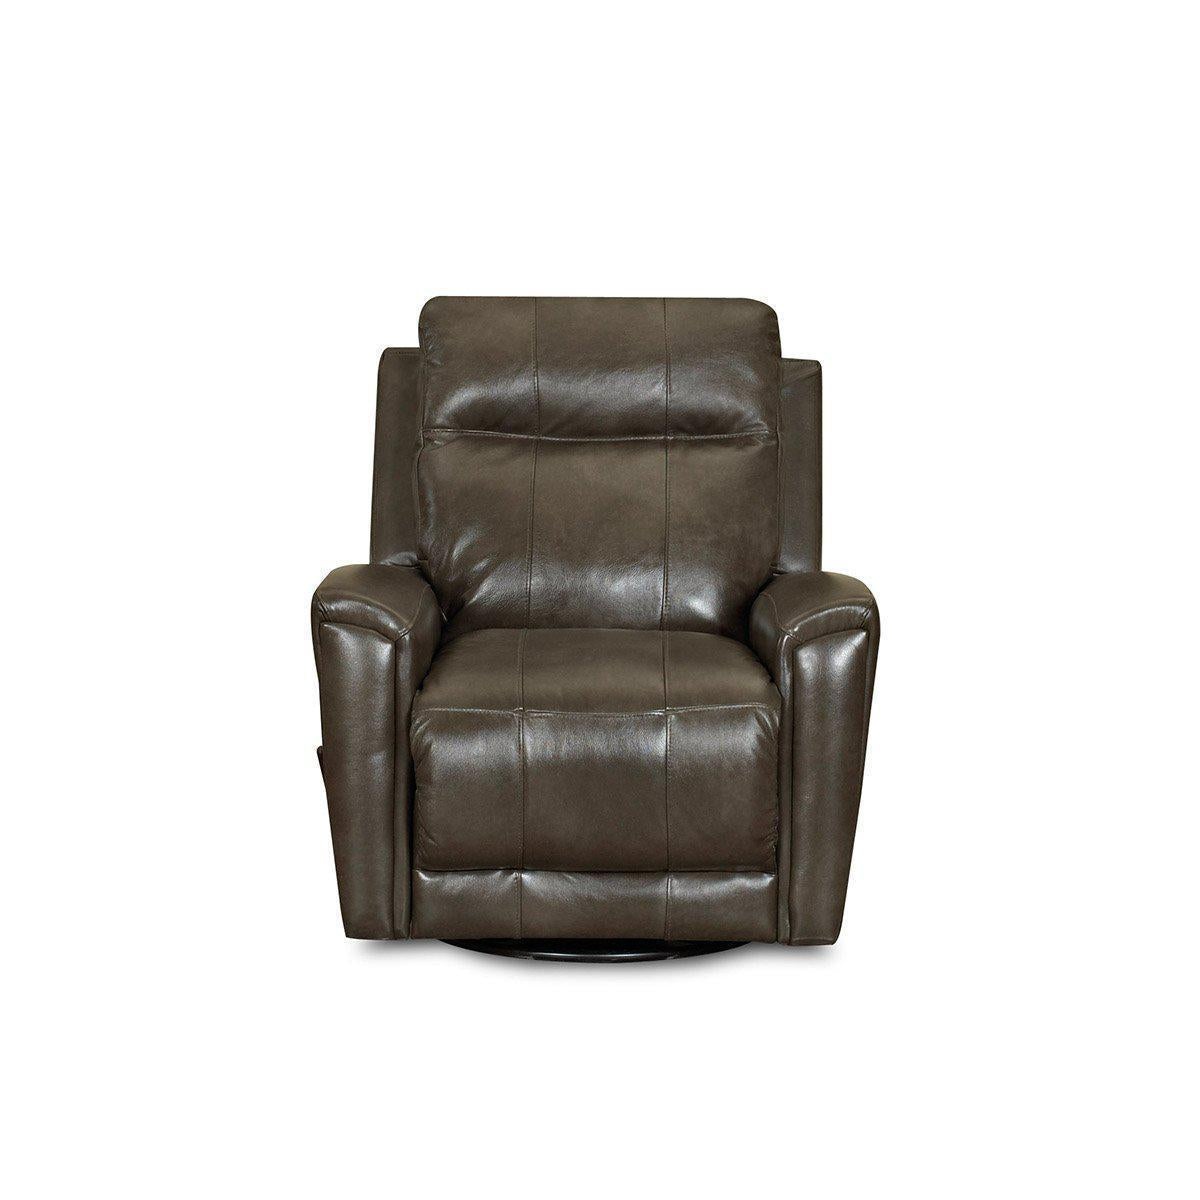 Megan Rocker Recliner